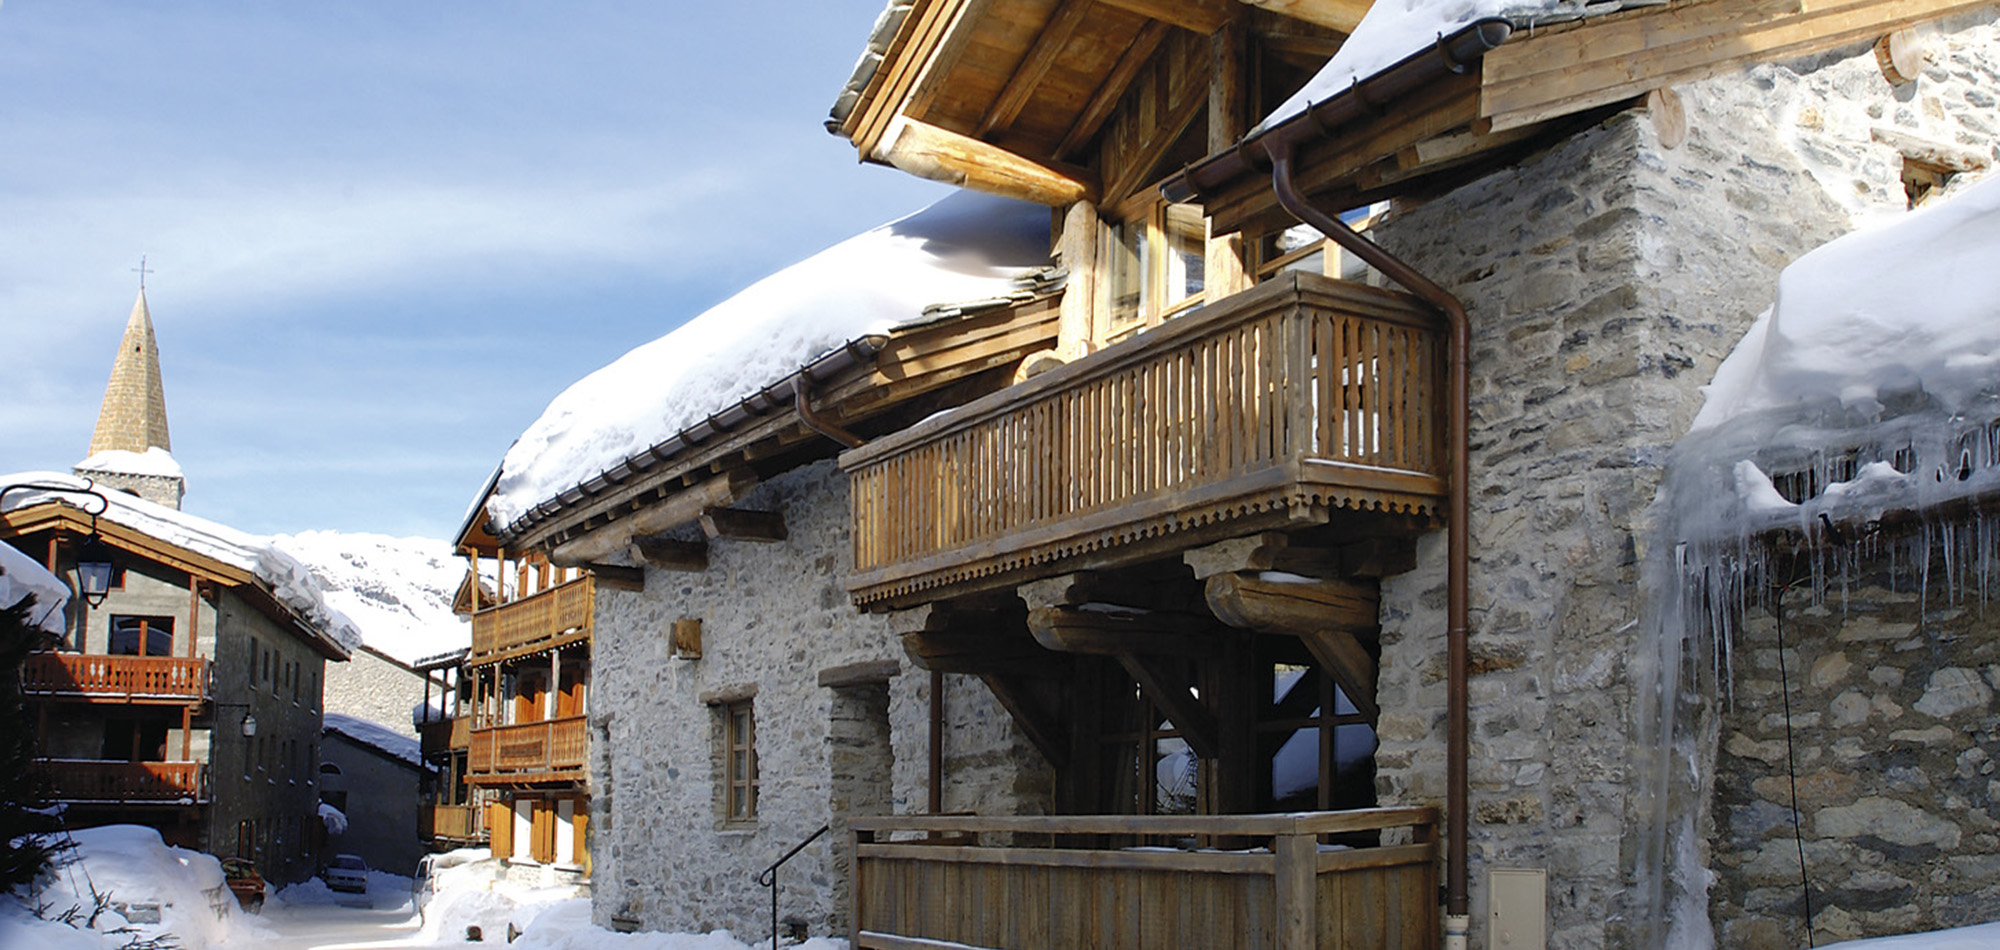 The Farmhouse Val D Isere The Farmhouse Luxury Ski Chalets Val D Isere Oxford Ski